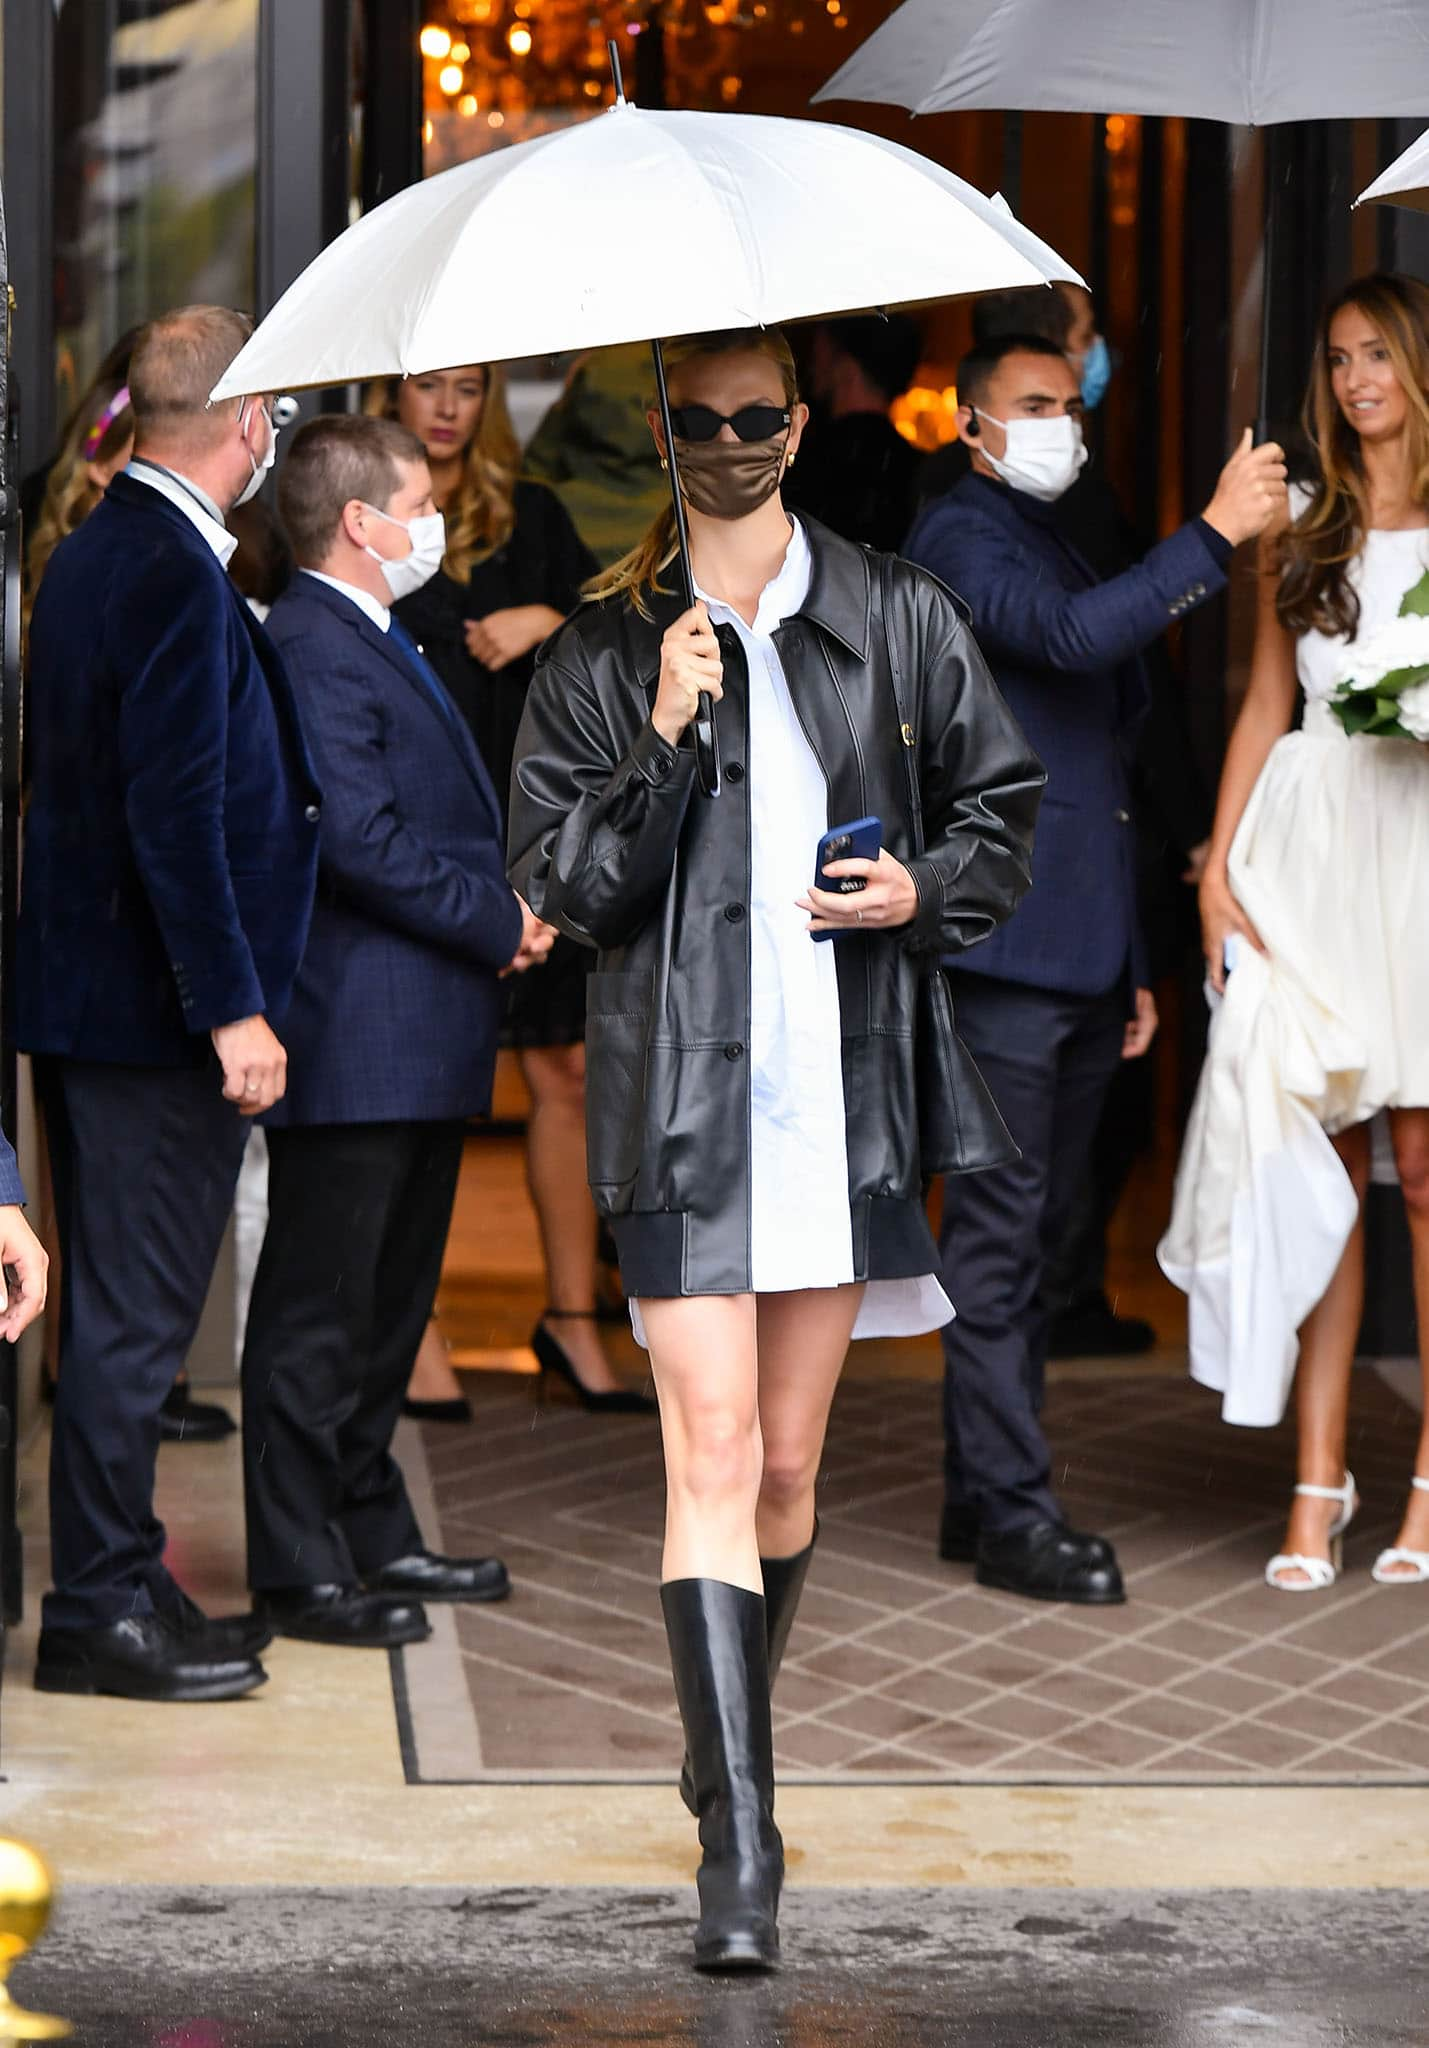 Karlie Kloss parades her legs in a Parisian chic white mini dress and black leather jacket